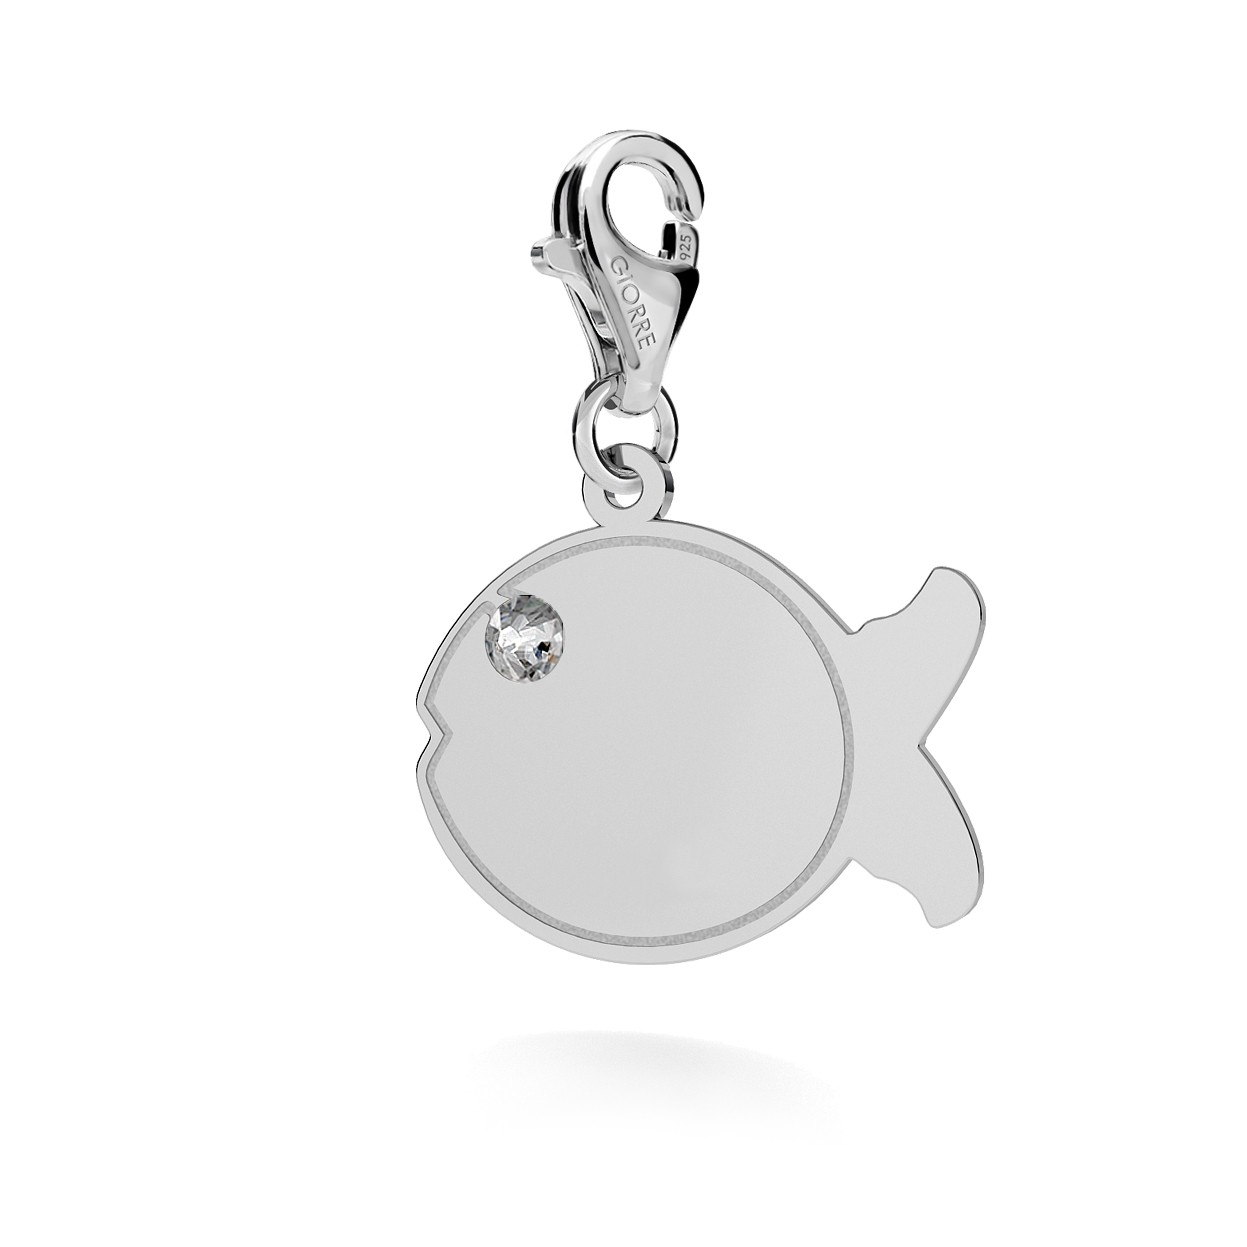 CHARM 115, FISH WITH ENGRAVE, STERLING SILVER (925) RHODIUM OR GOLD PLATE